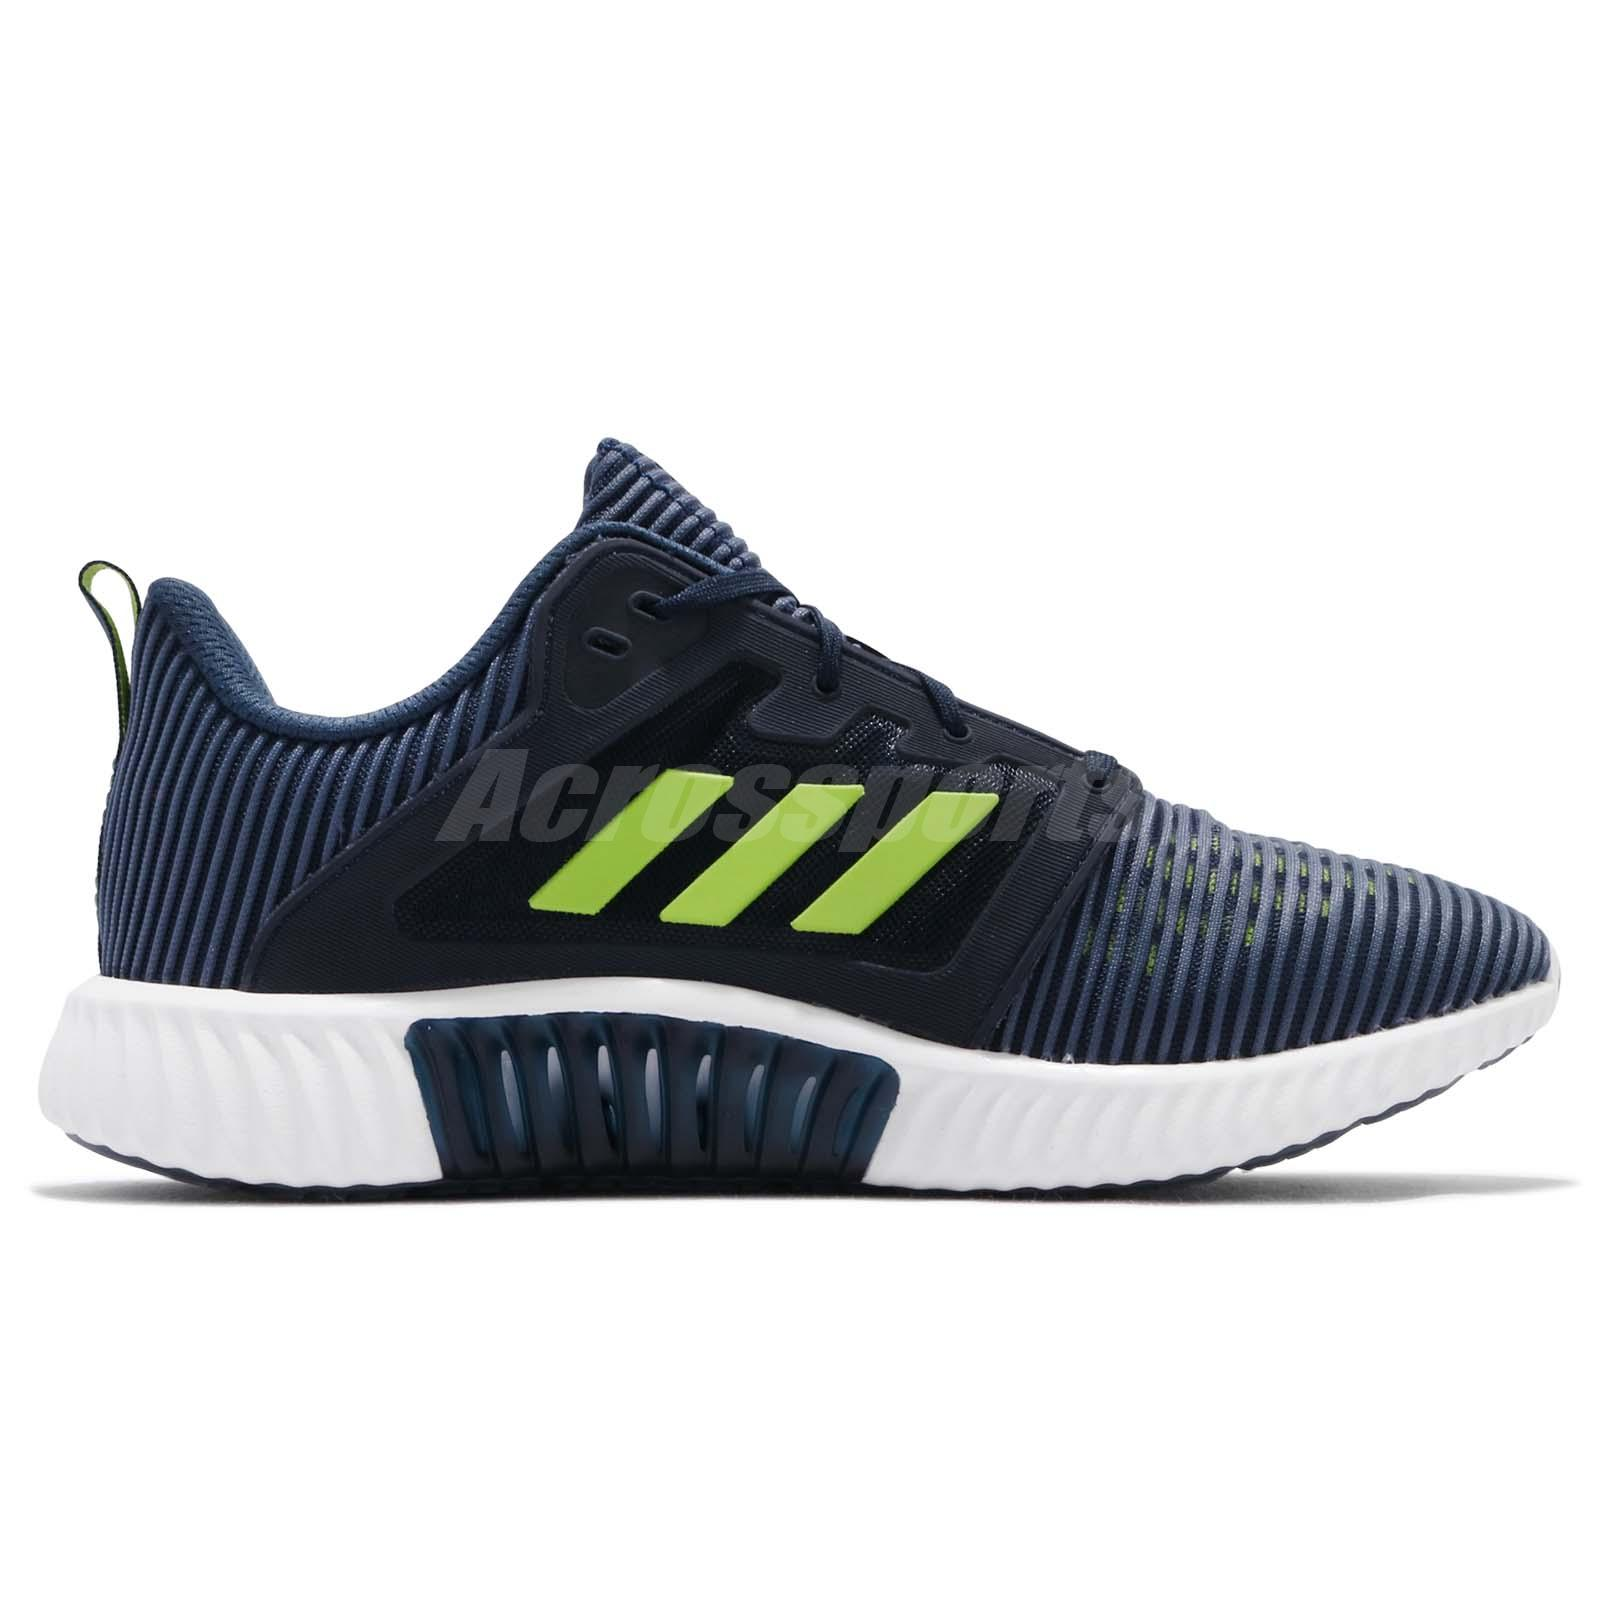 check out a4651 bffce Details about adidas Climacool Vent M Core Navy Lime Men Running Shoes  Sneakers CM7397